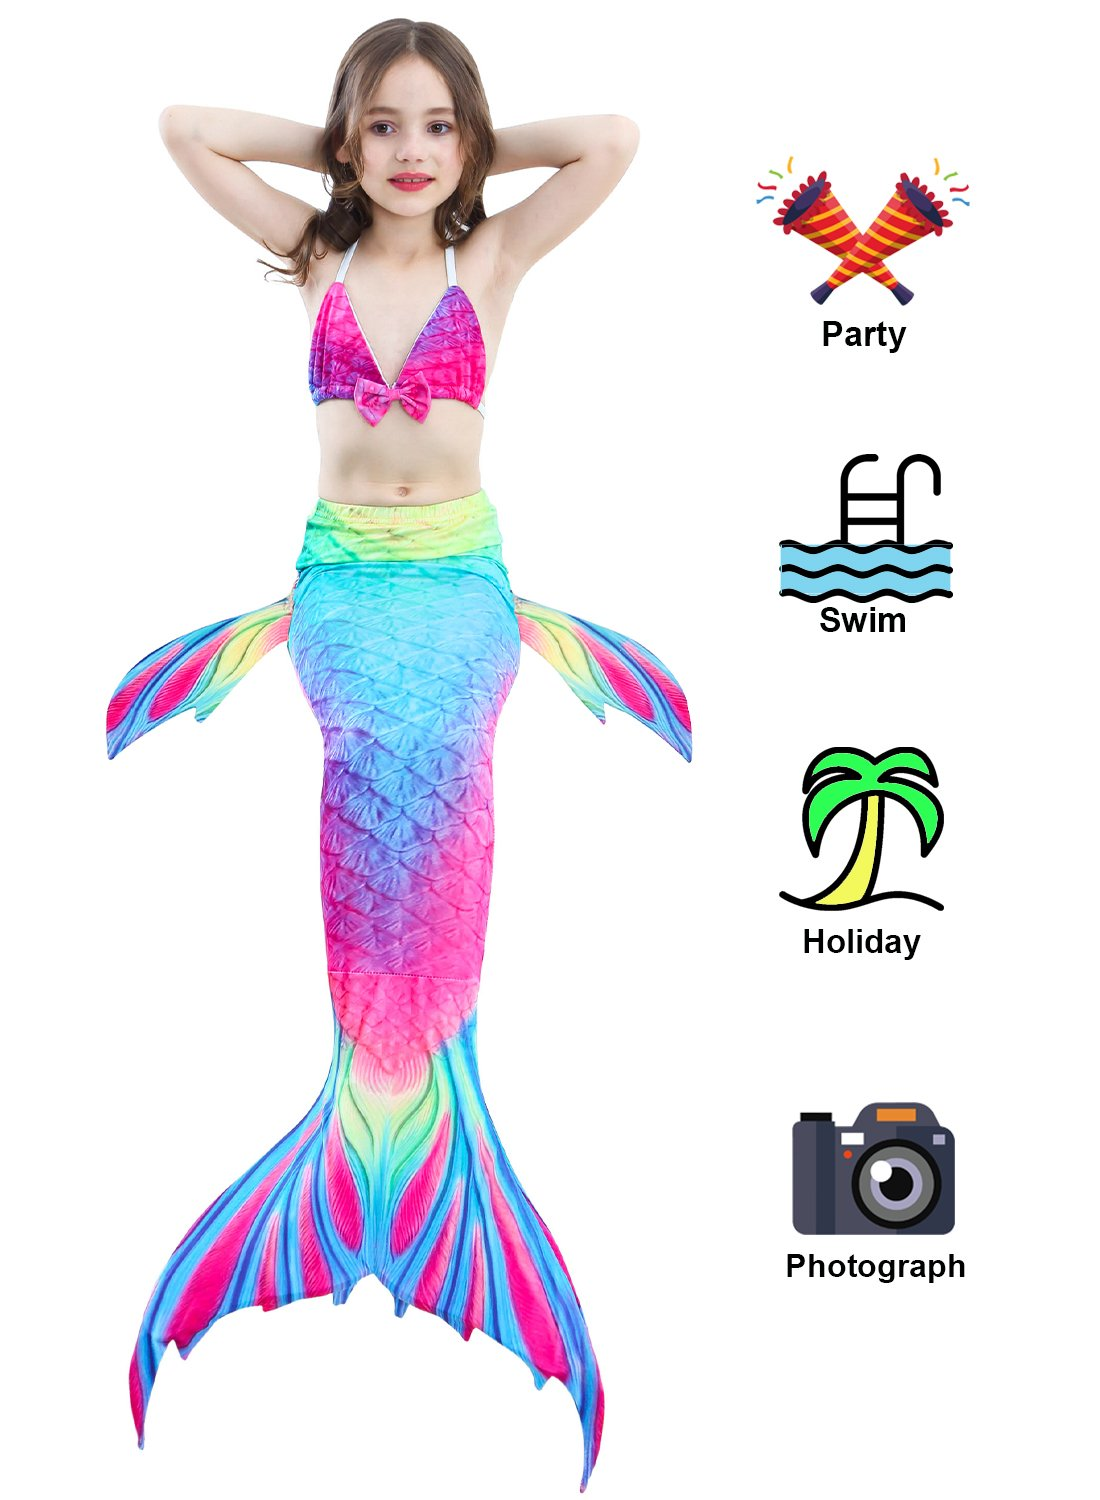 Camlinbo 3PCS Girls' Swimsuit Mermaid Tail for Swimming Tropical Bikini Set Support Monofin by Camlinbo (Image #4)